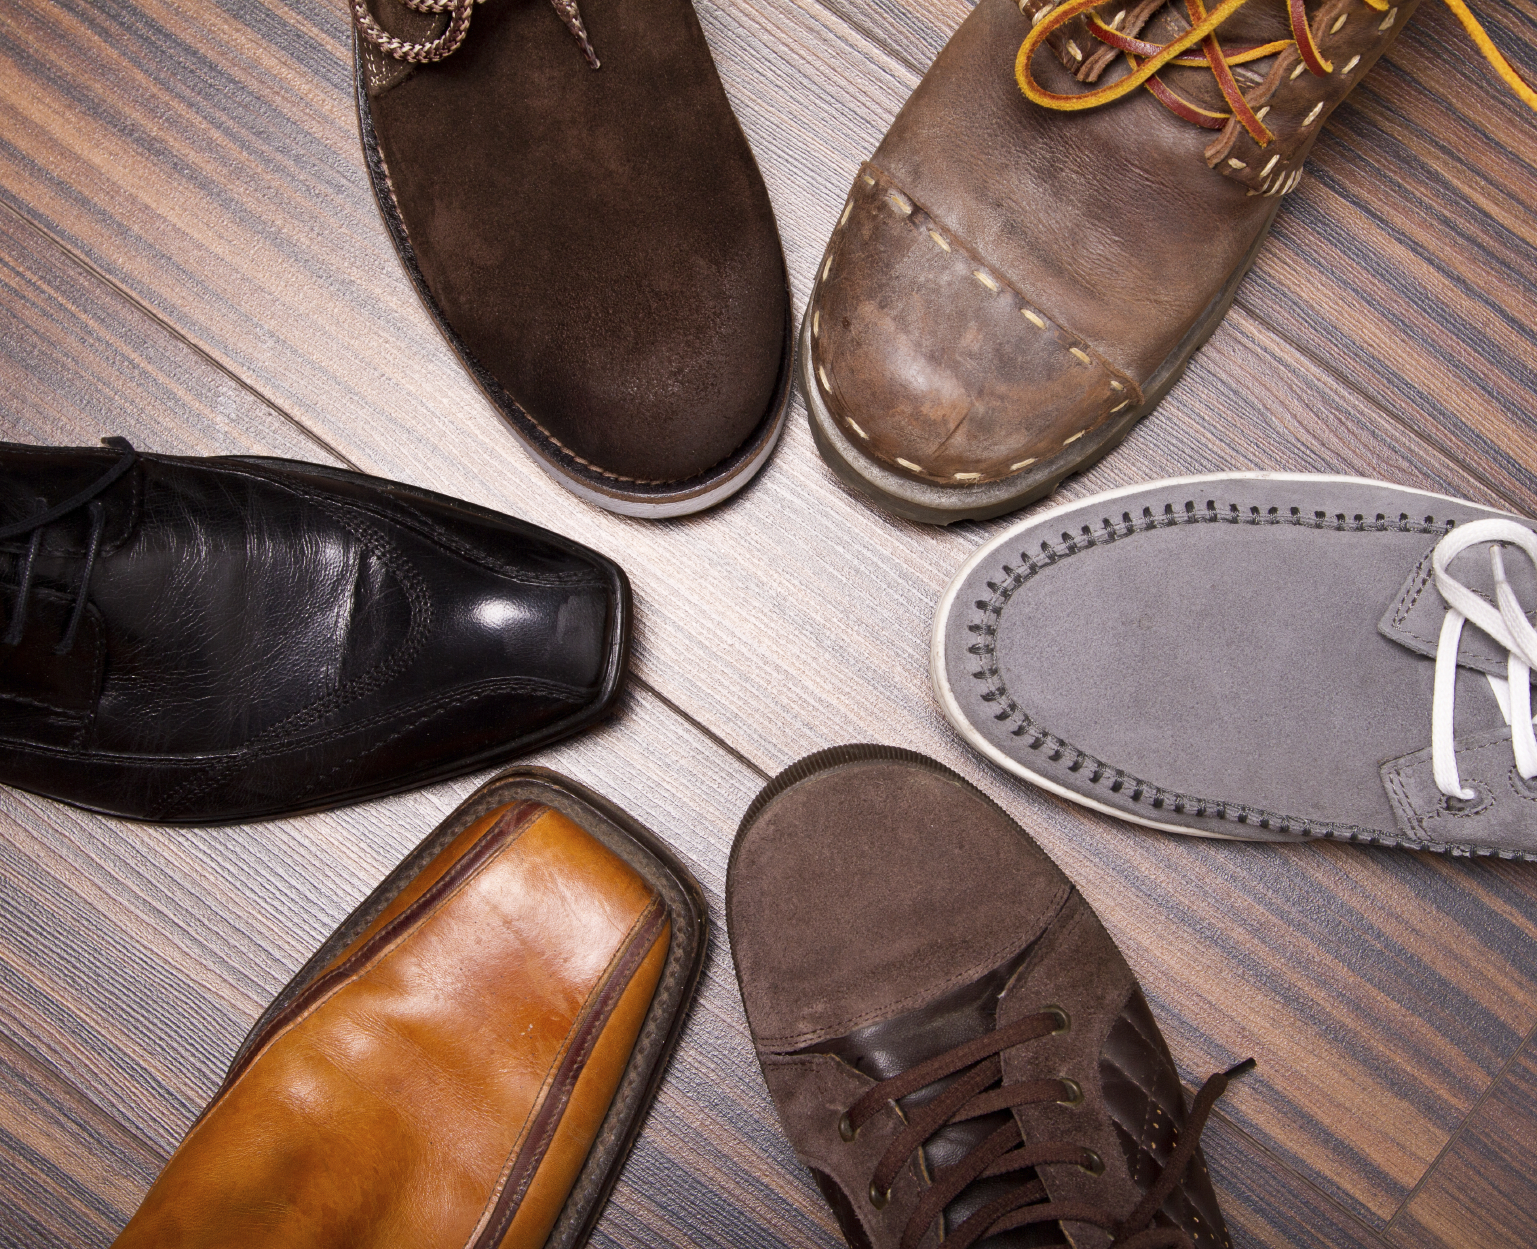 Several designs of men's shoes